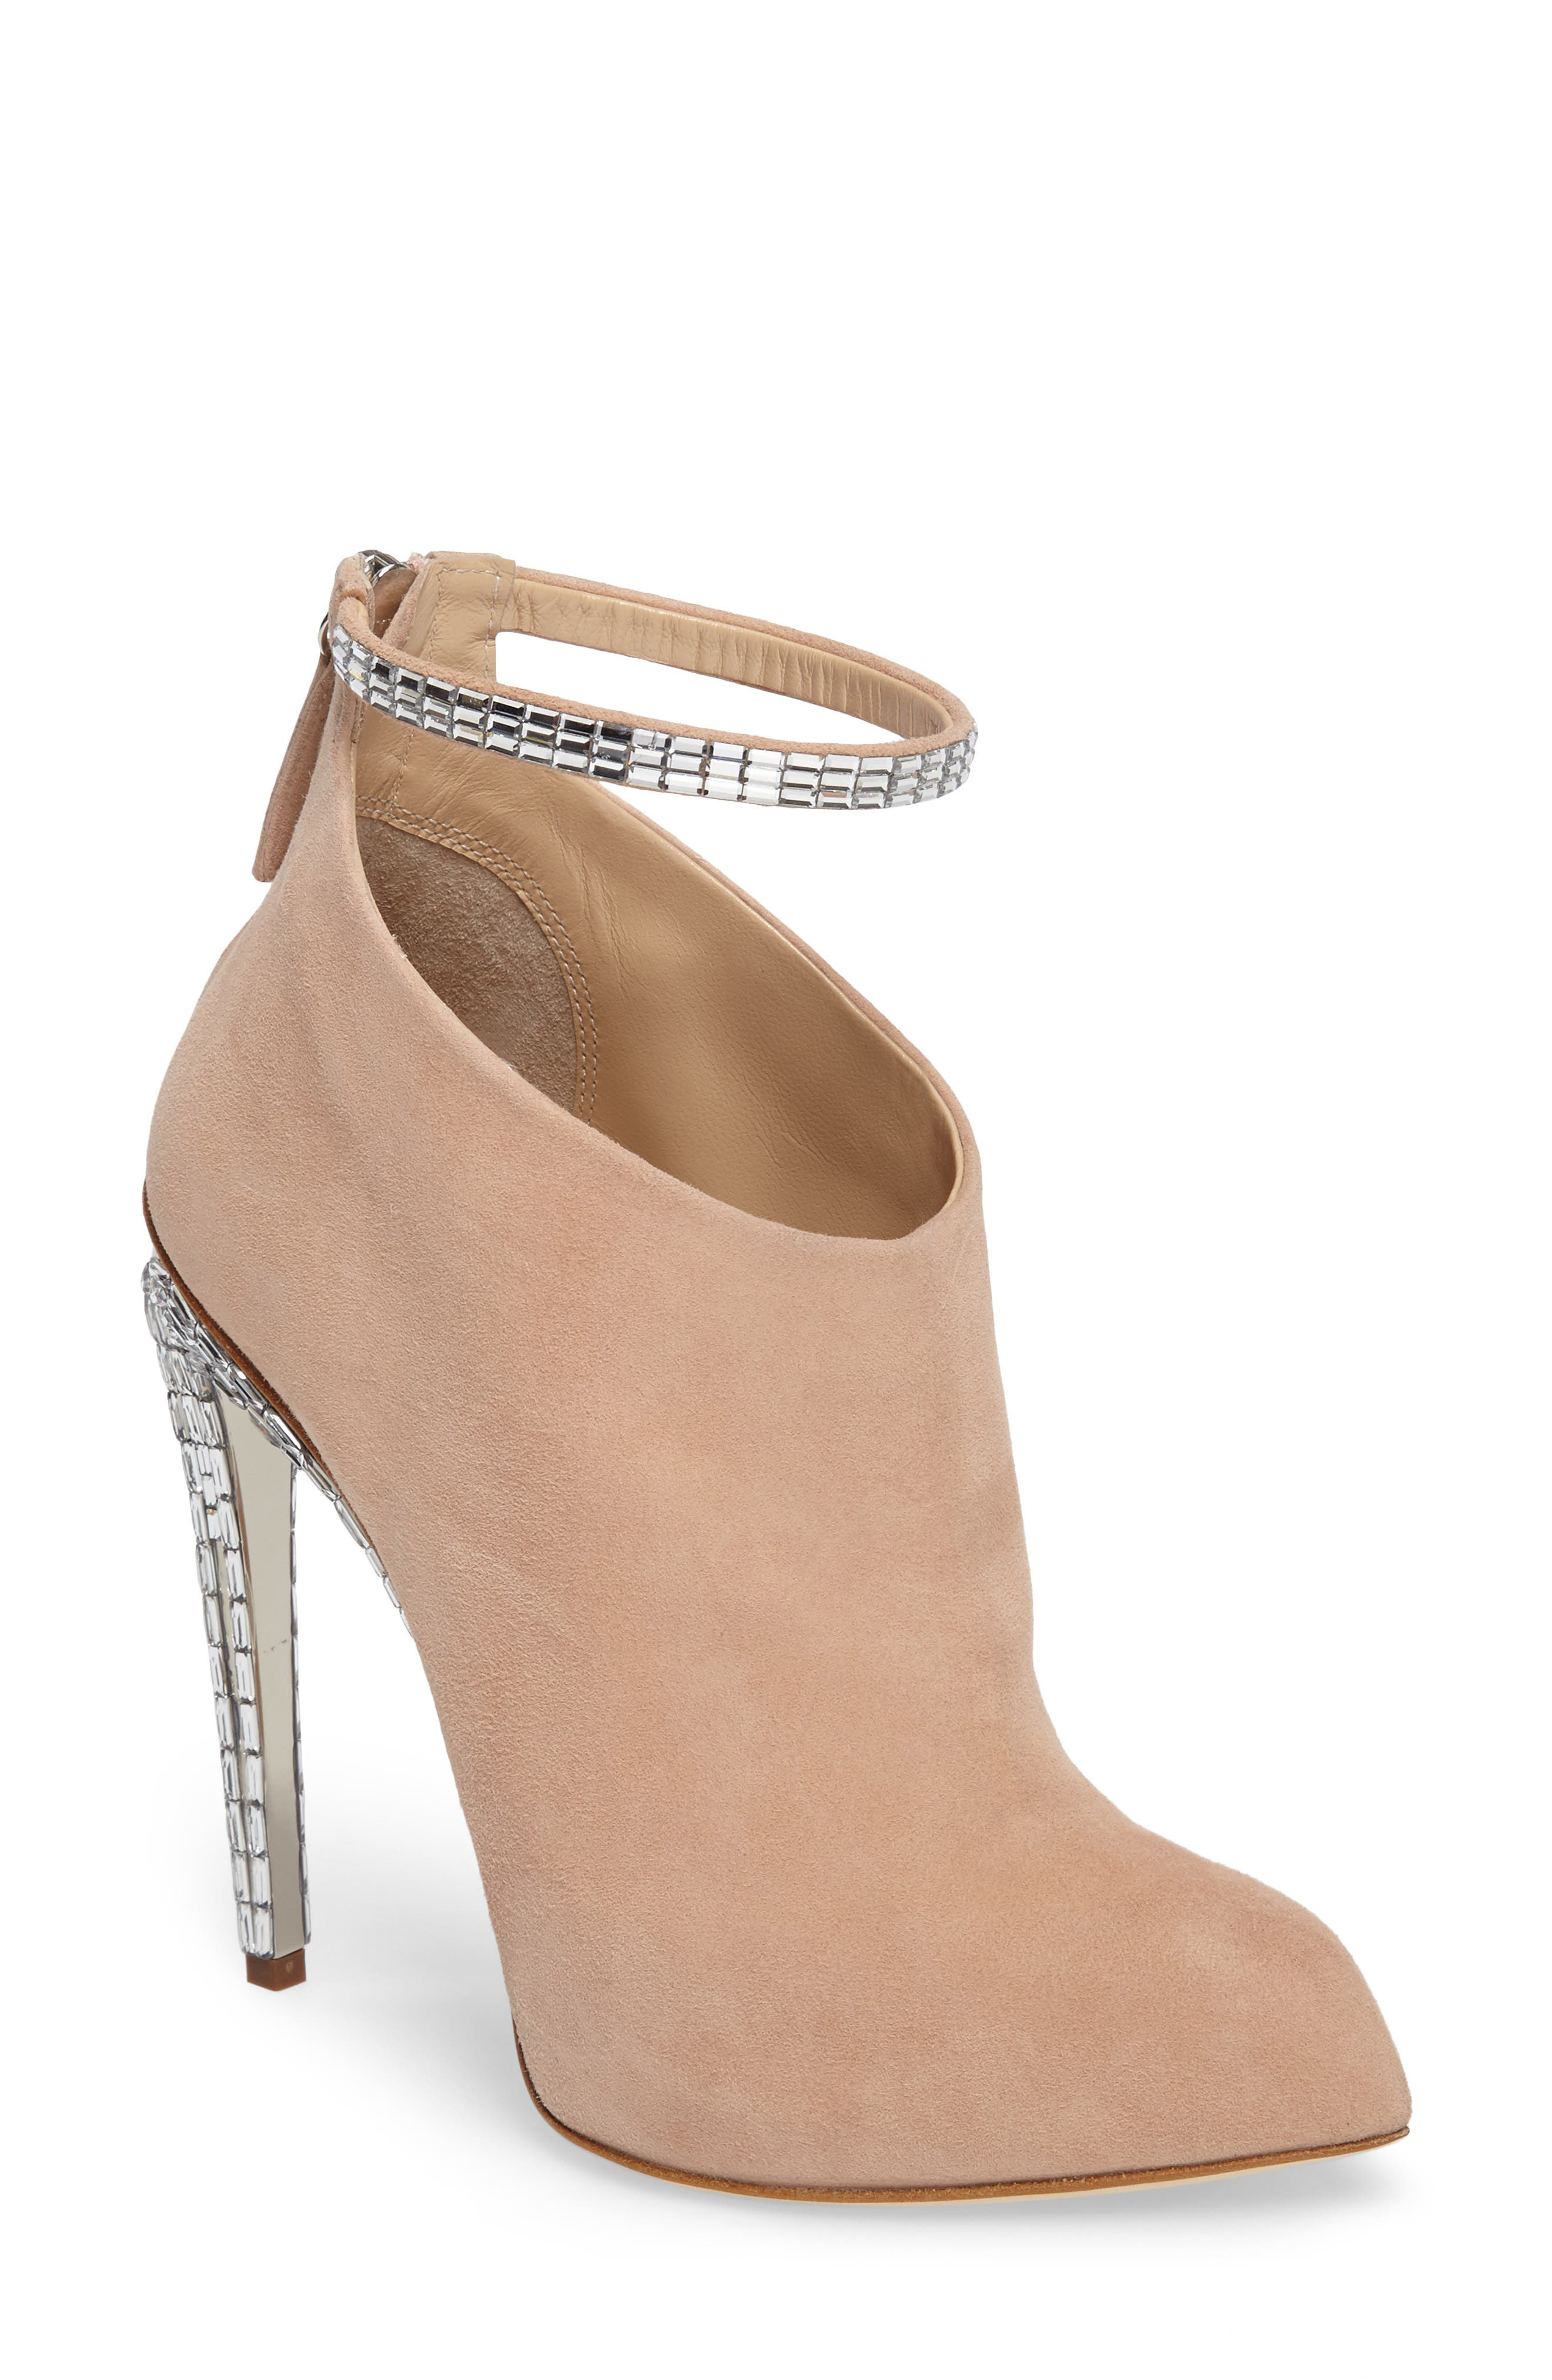 Giuseppe for Jennifer Lopez Ankle Strap Bootie,                         Main,                         color,